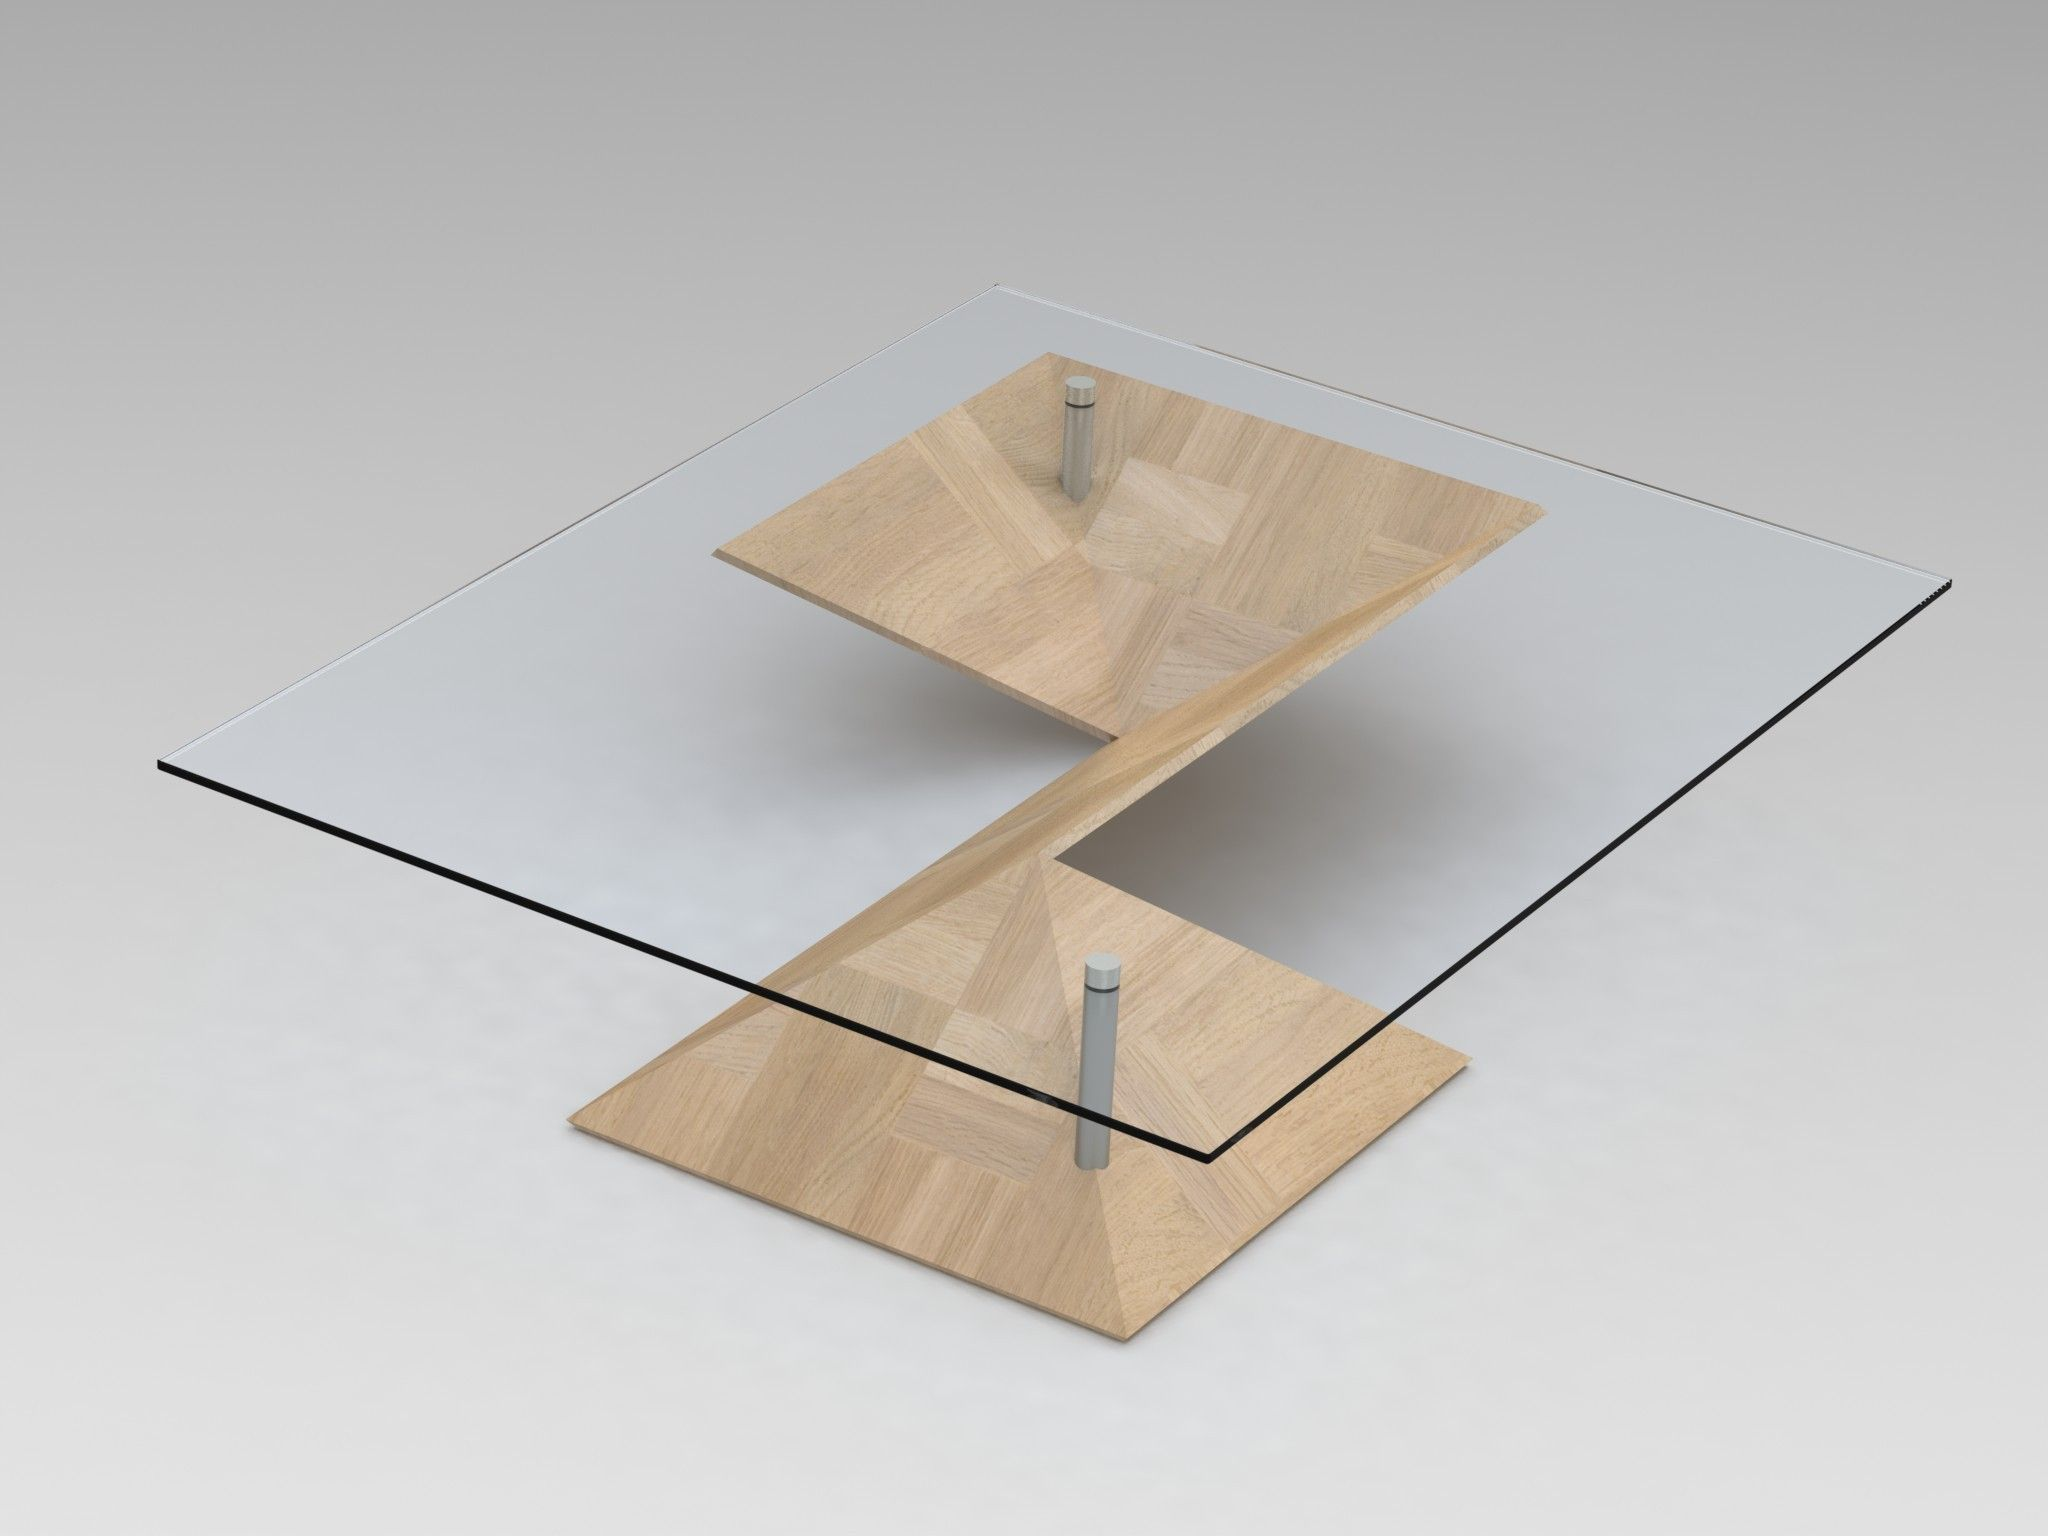 ... Origami Coffee Table 3d Model Sldprt Sldasm Slddrw Ige Igs Iges 2 ...